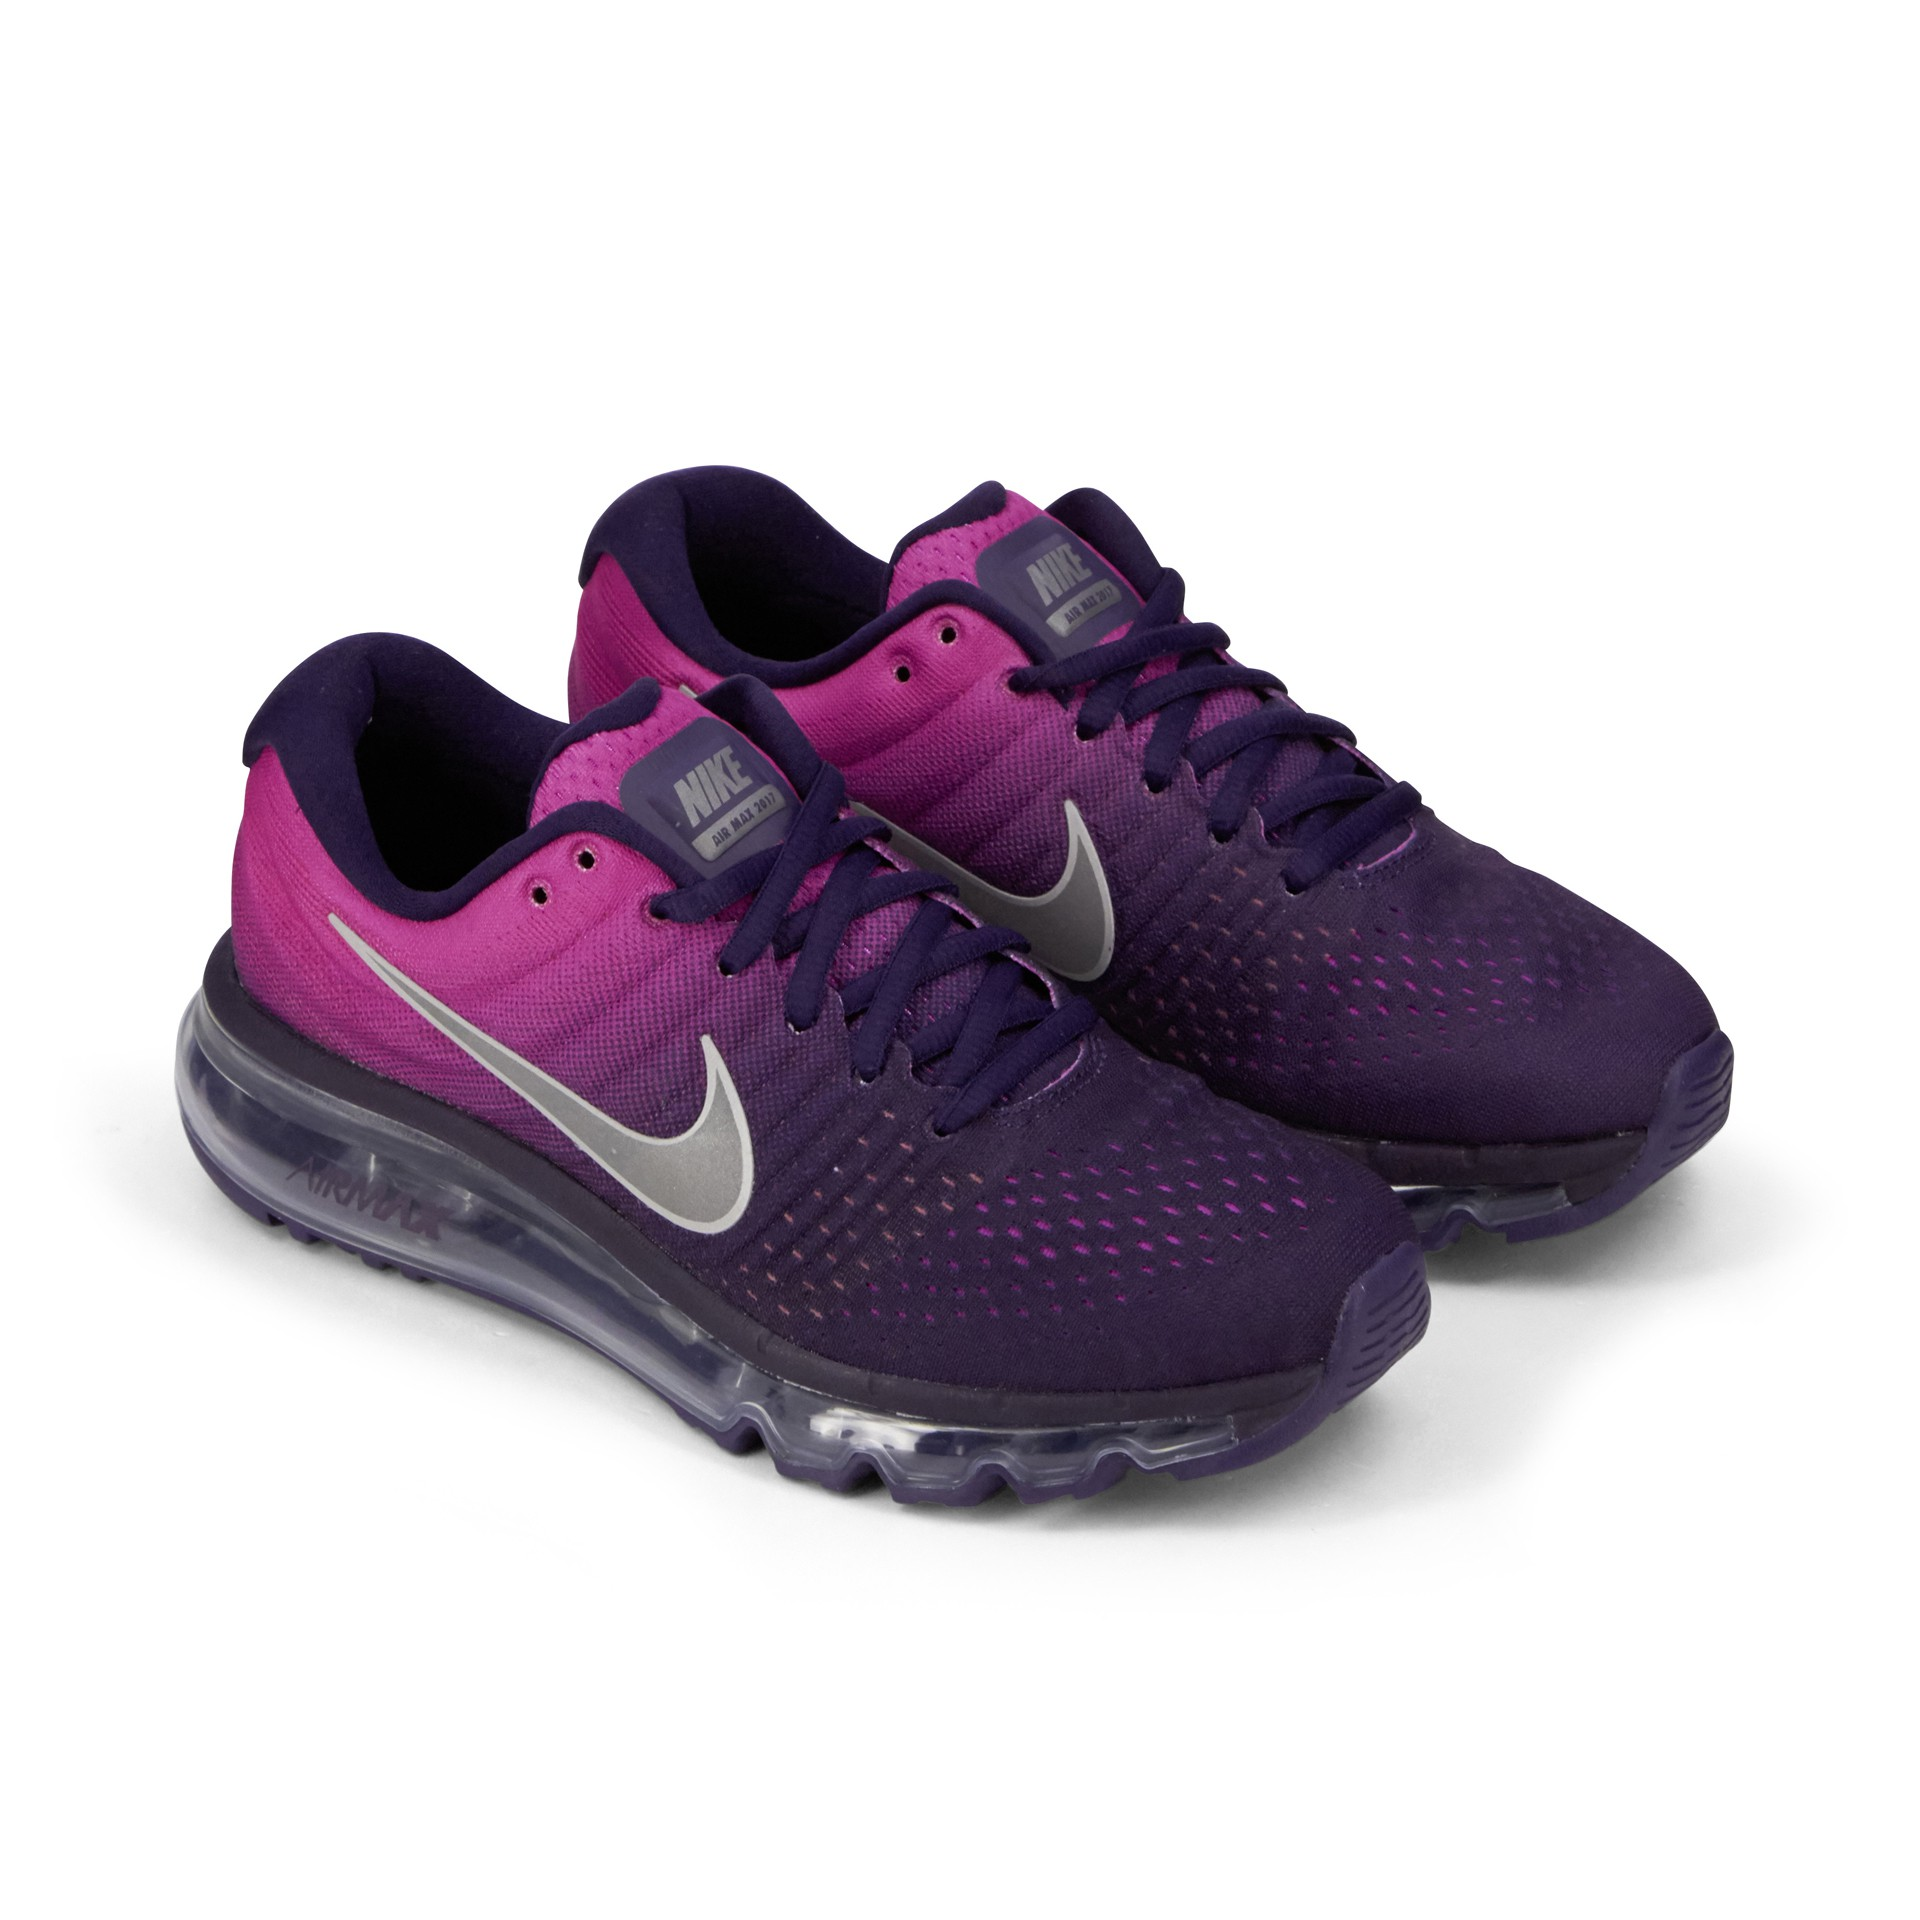 competitive price 11e6a 9af43 Acheter Nike Air Max 2017 Femme Boutique Tea1626